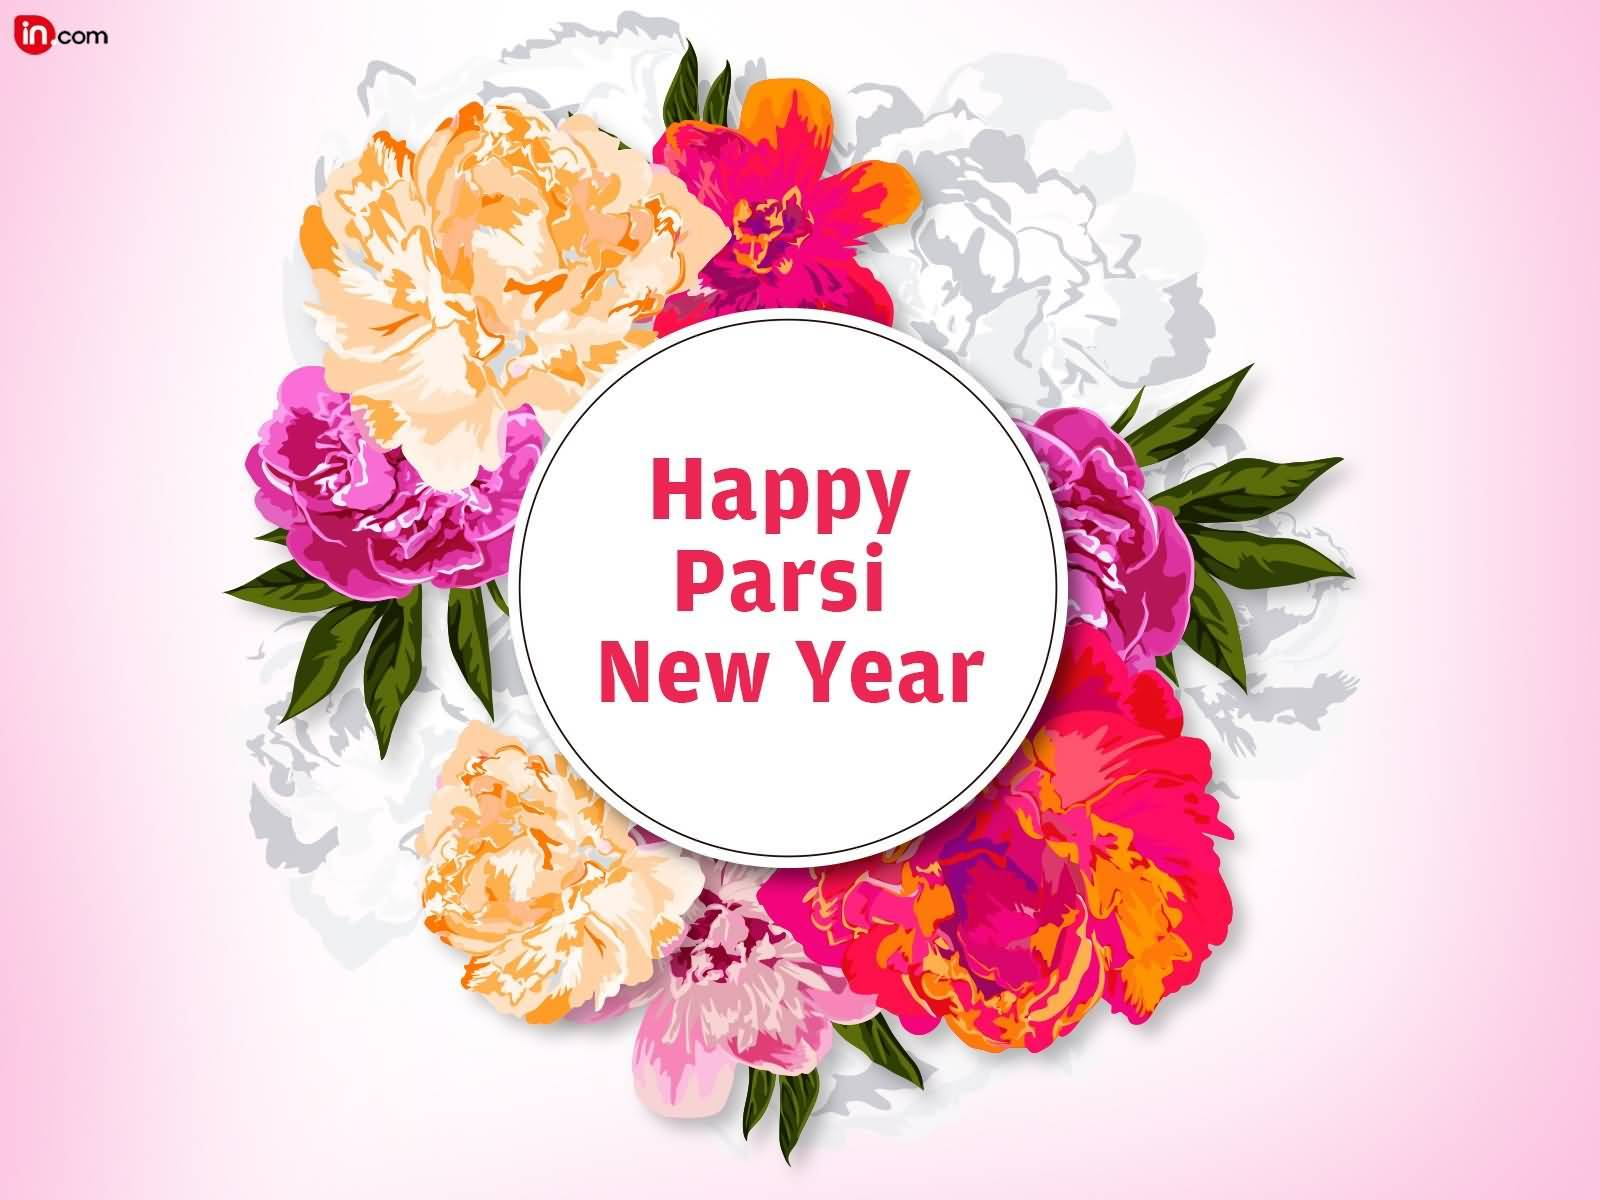 happy parsi new year colorful flowers in background picture